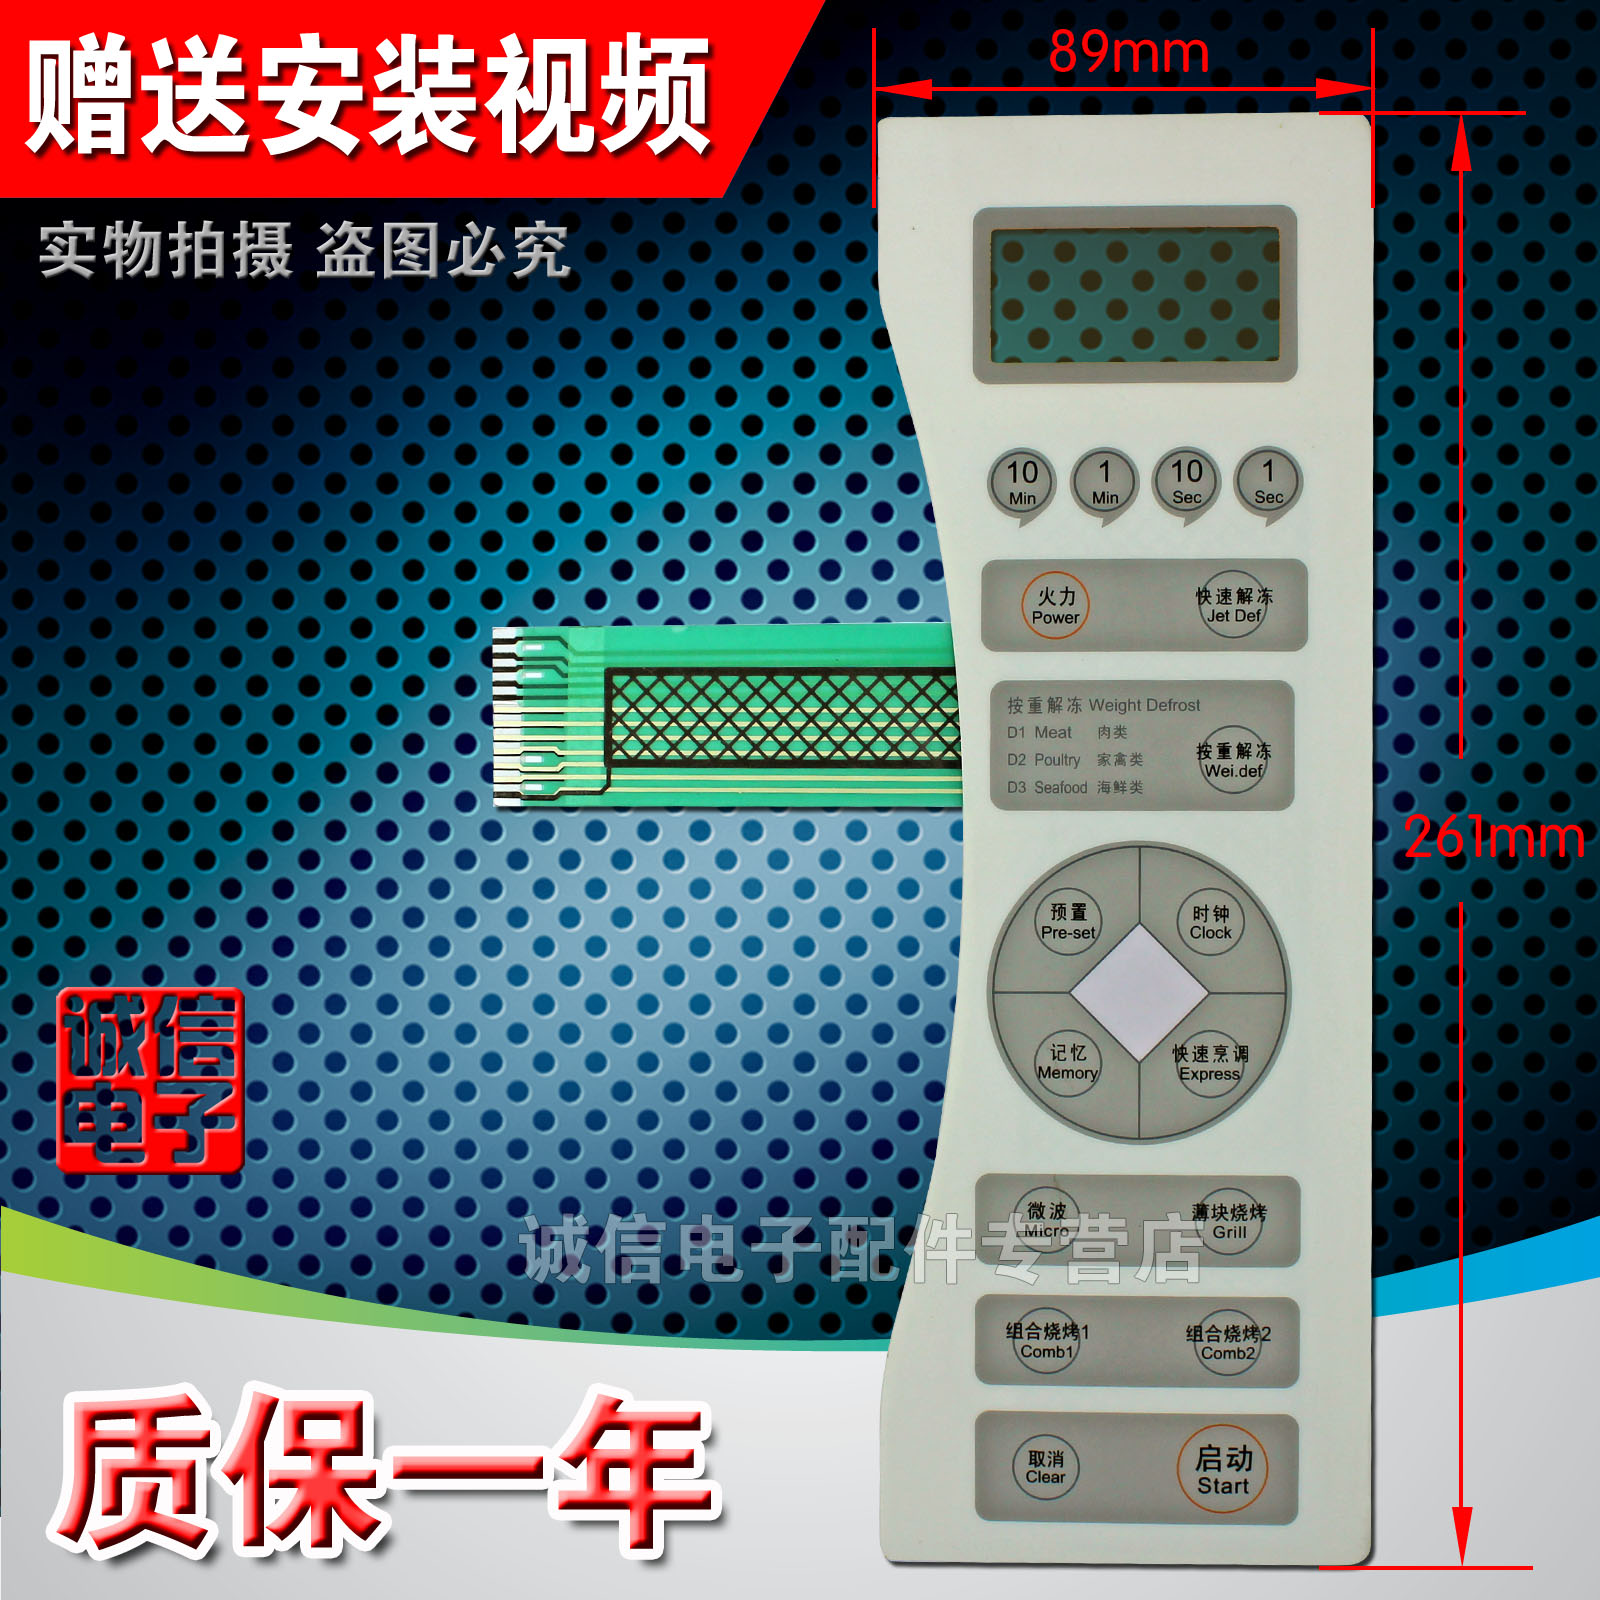 (shipping buy 2 get 1) microwave oven panel button switch control panel wd900asl23-k4 thin film